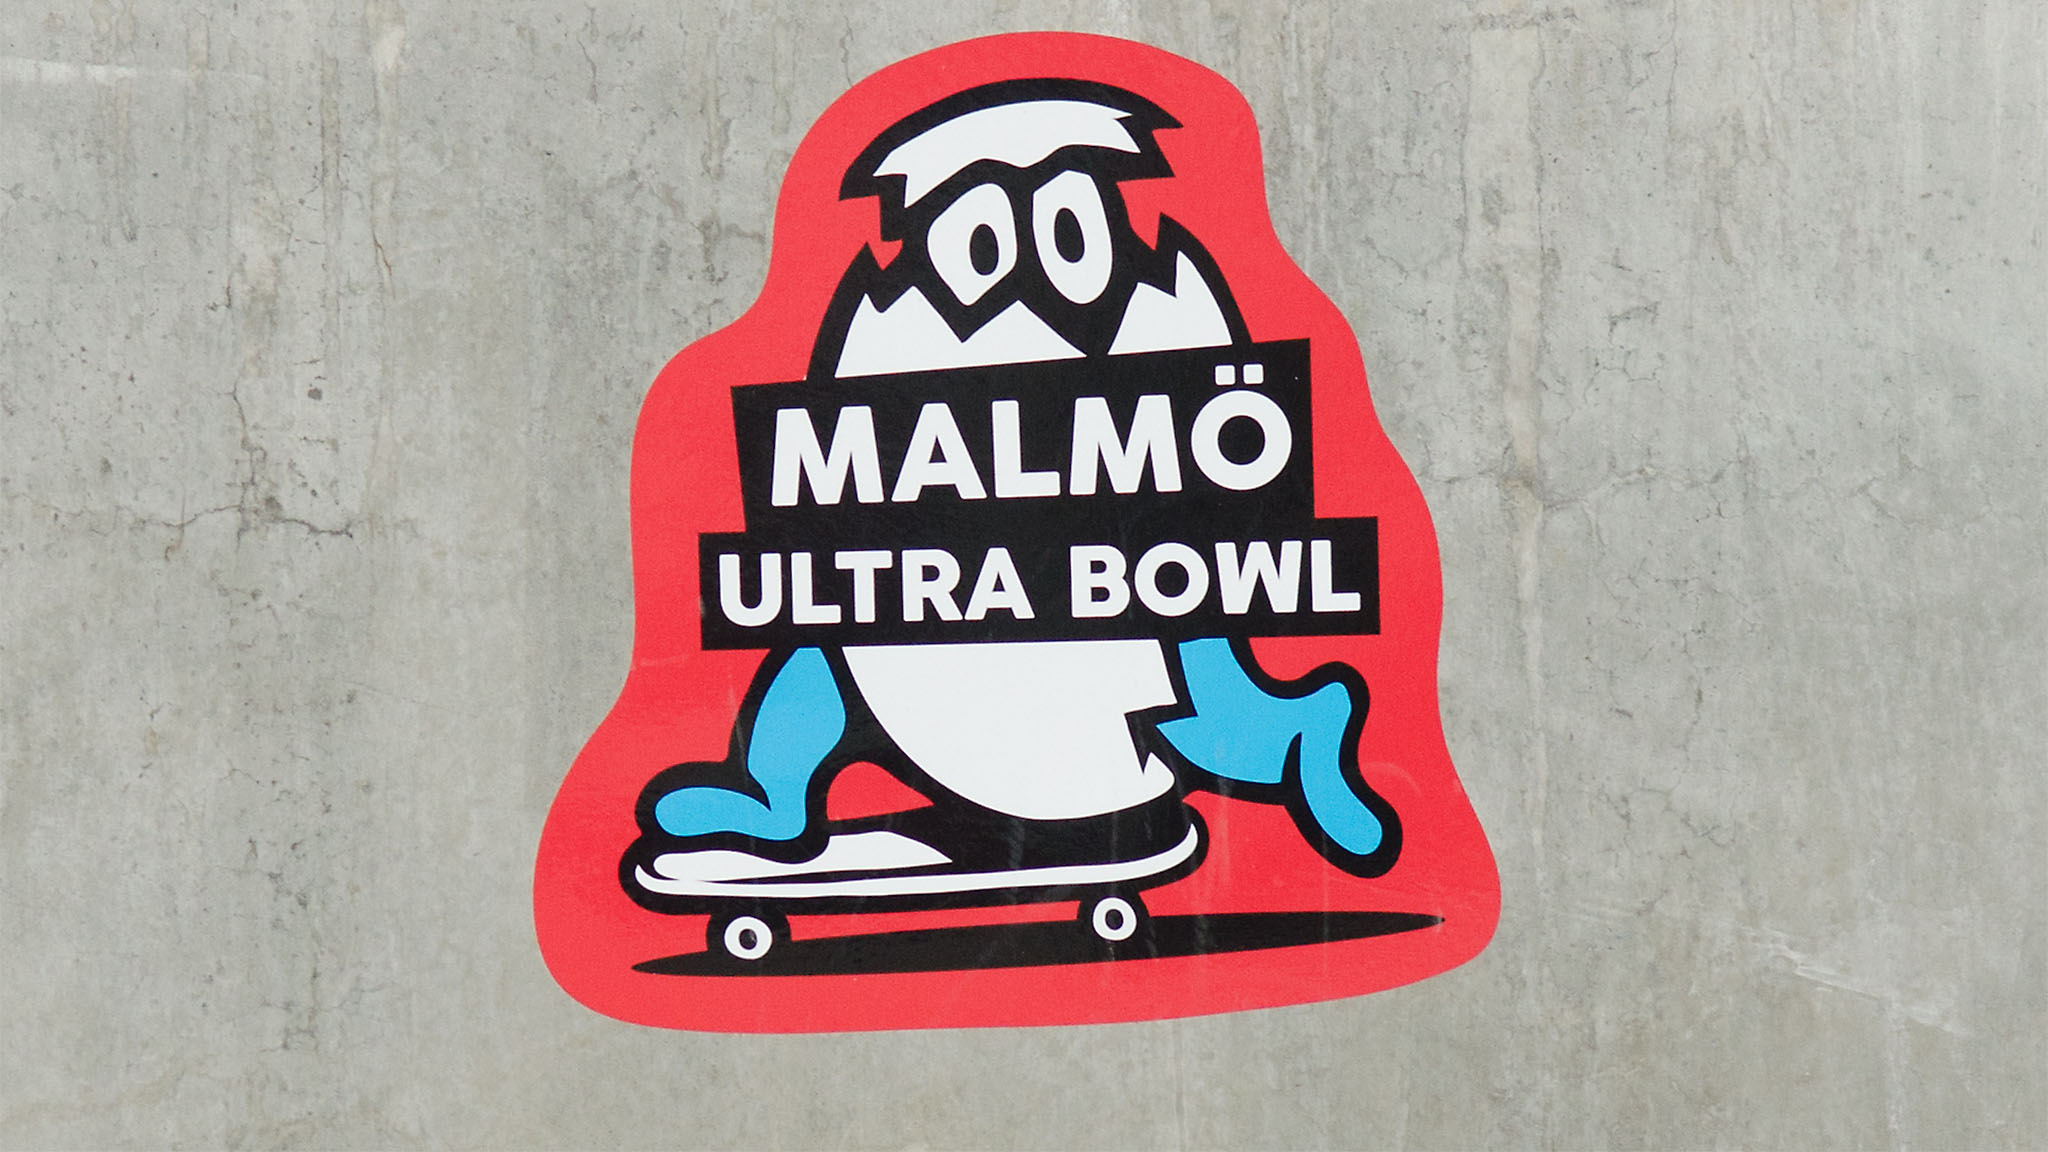 Ultra Bowl 6 -- Malm�, Sweden